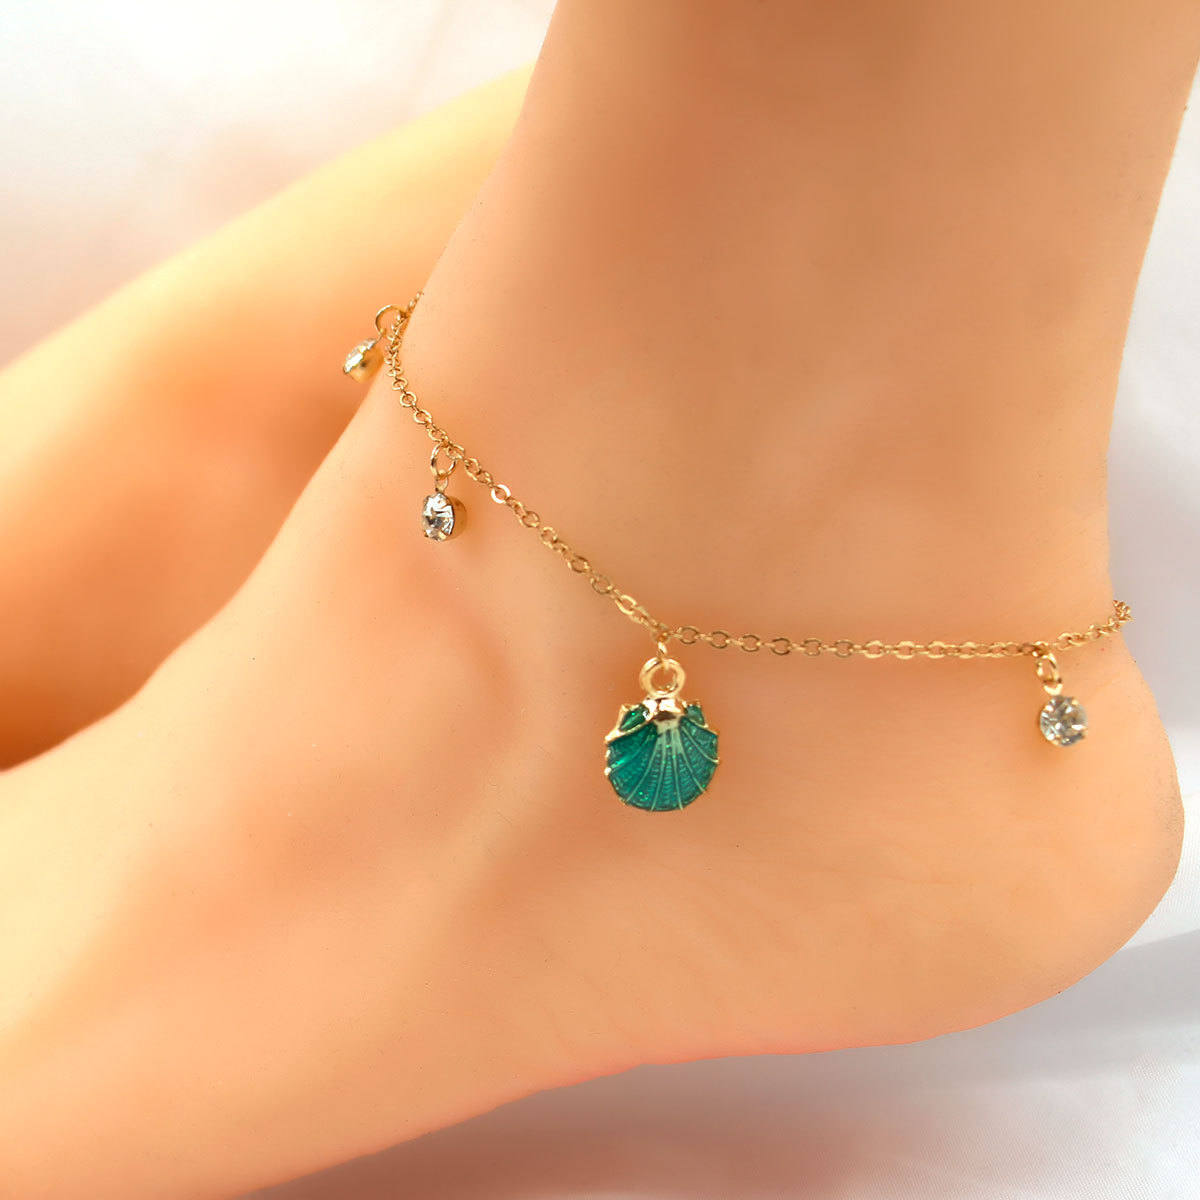 Retro Beach Style Metal Shell Foot Chain Anklets Exquisite Crystal Pendant Adjustable Anklet Bracelet Jewelry